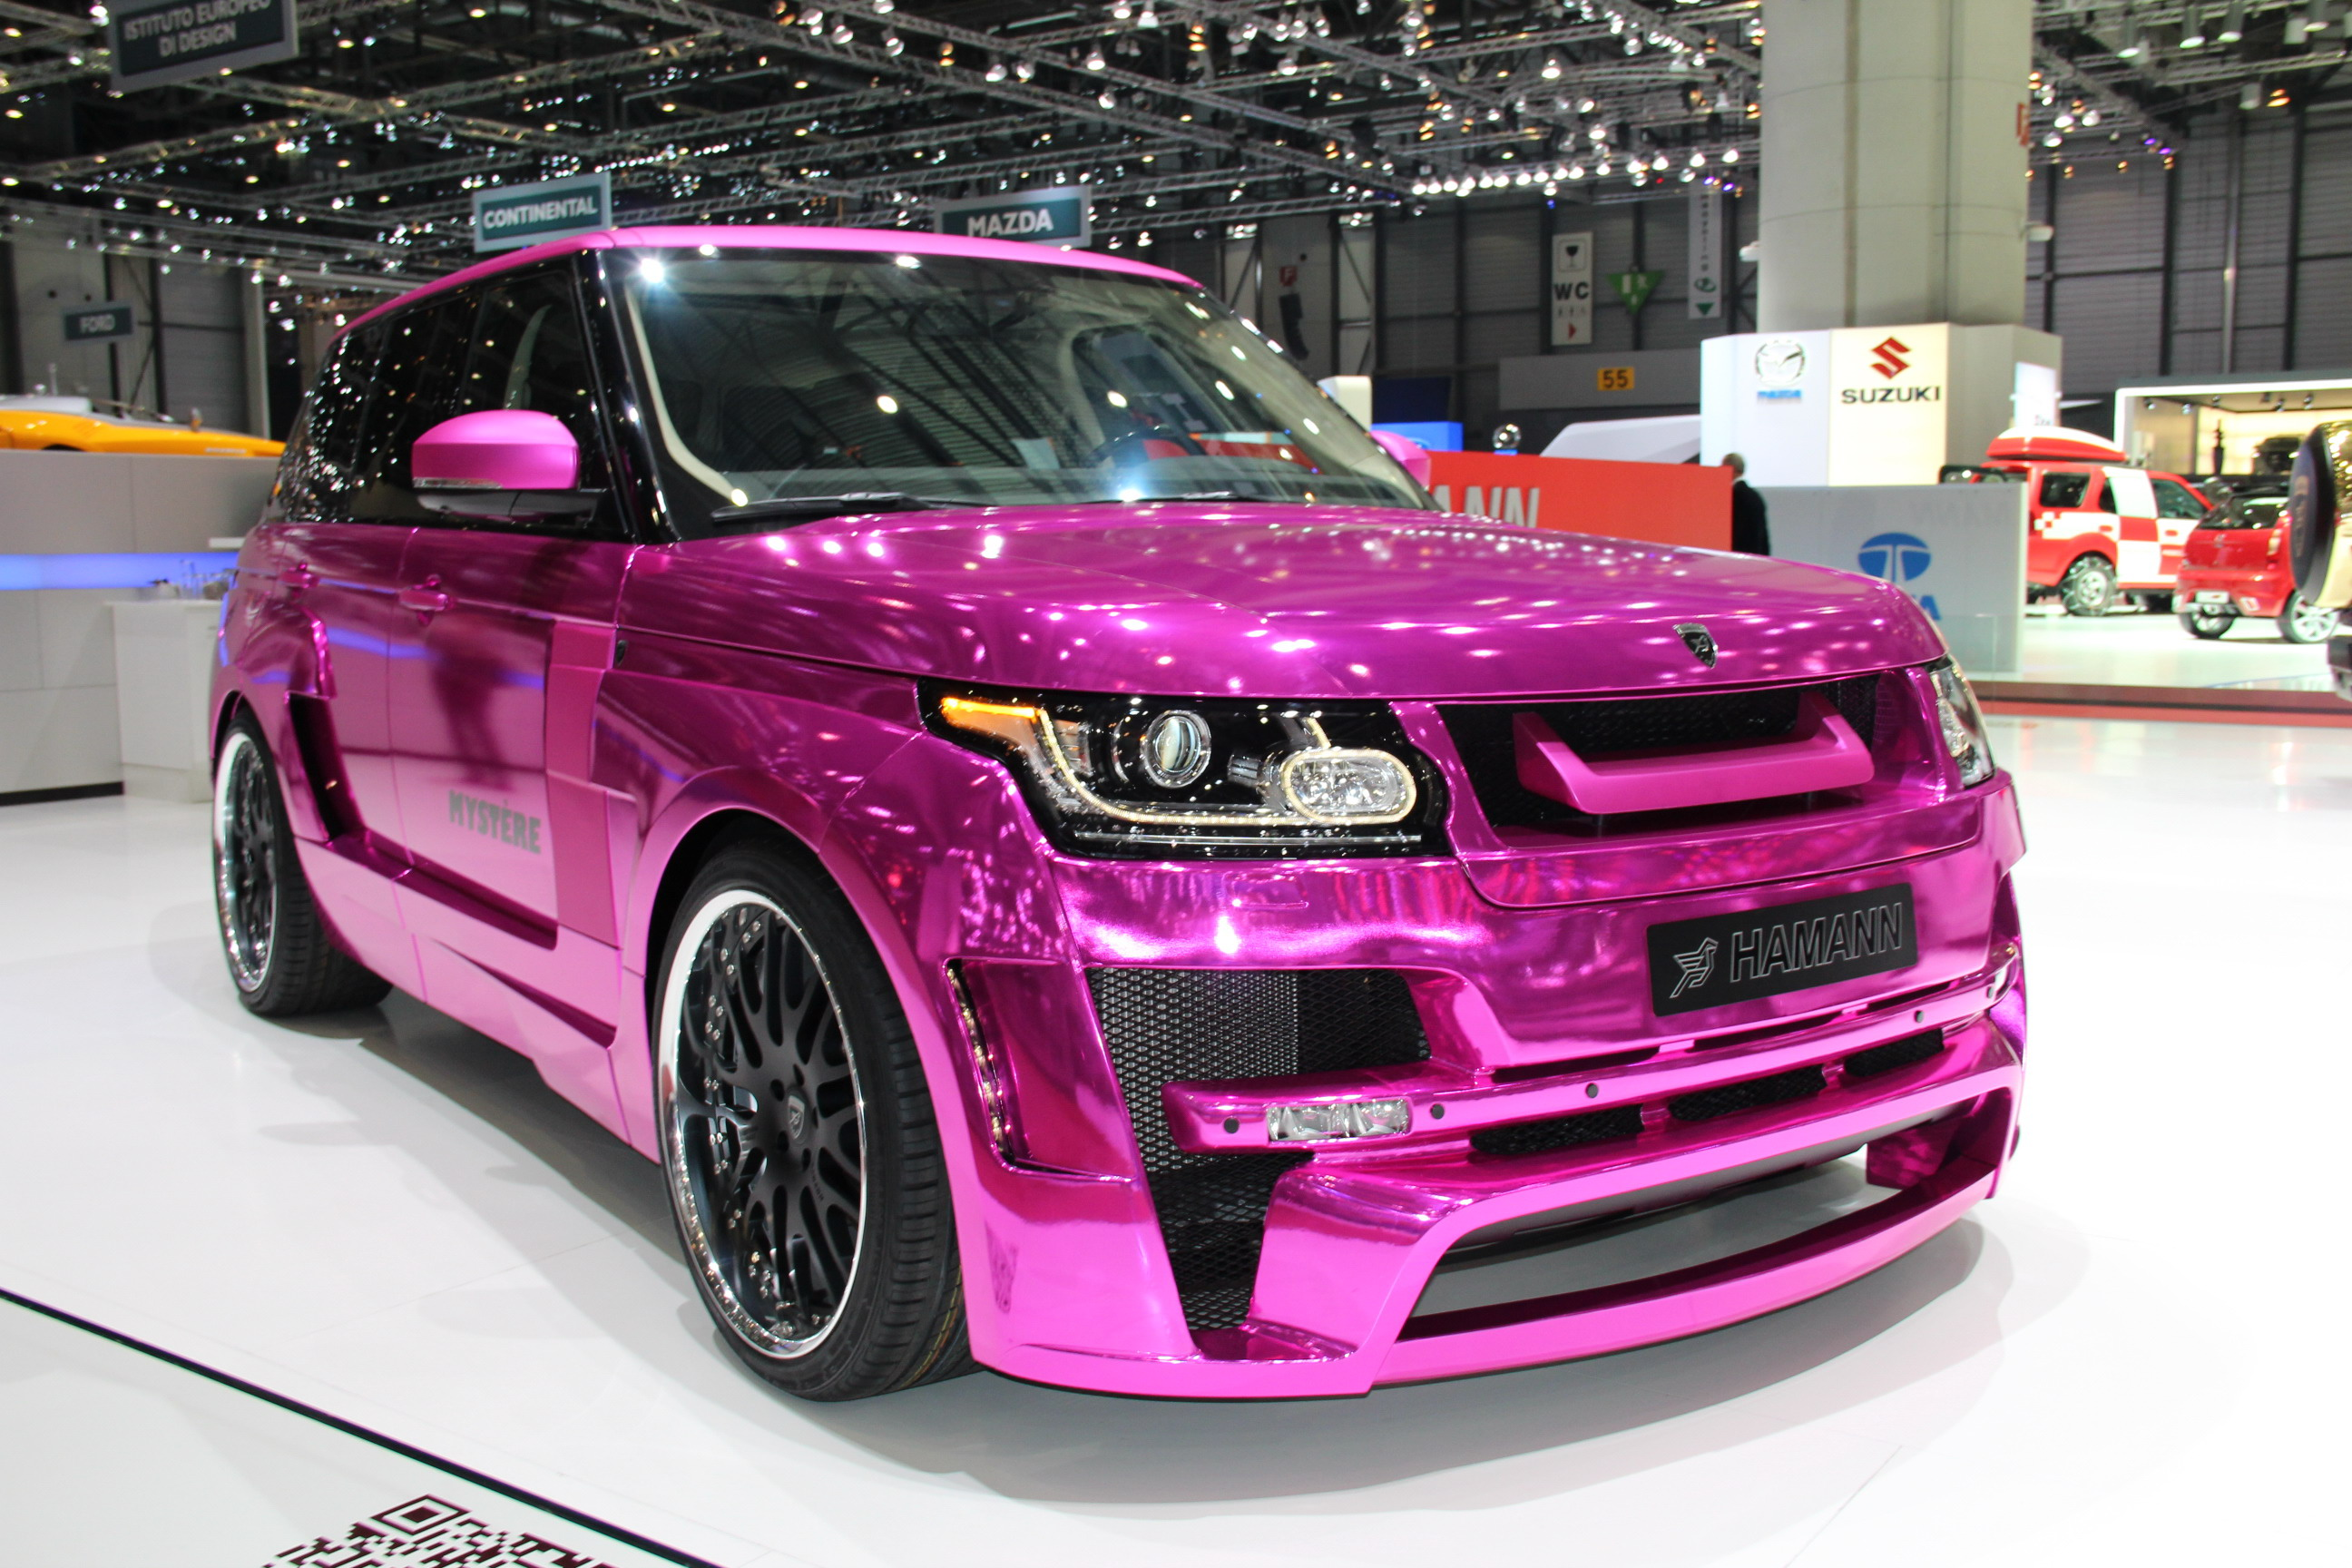 2013 Range Rover Mystere By Hamann Review - Top Speed